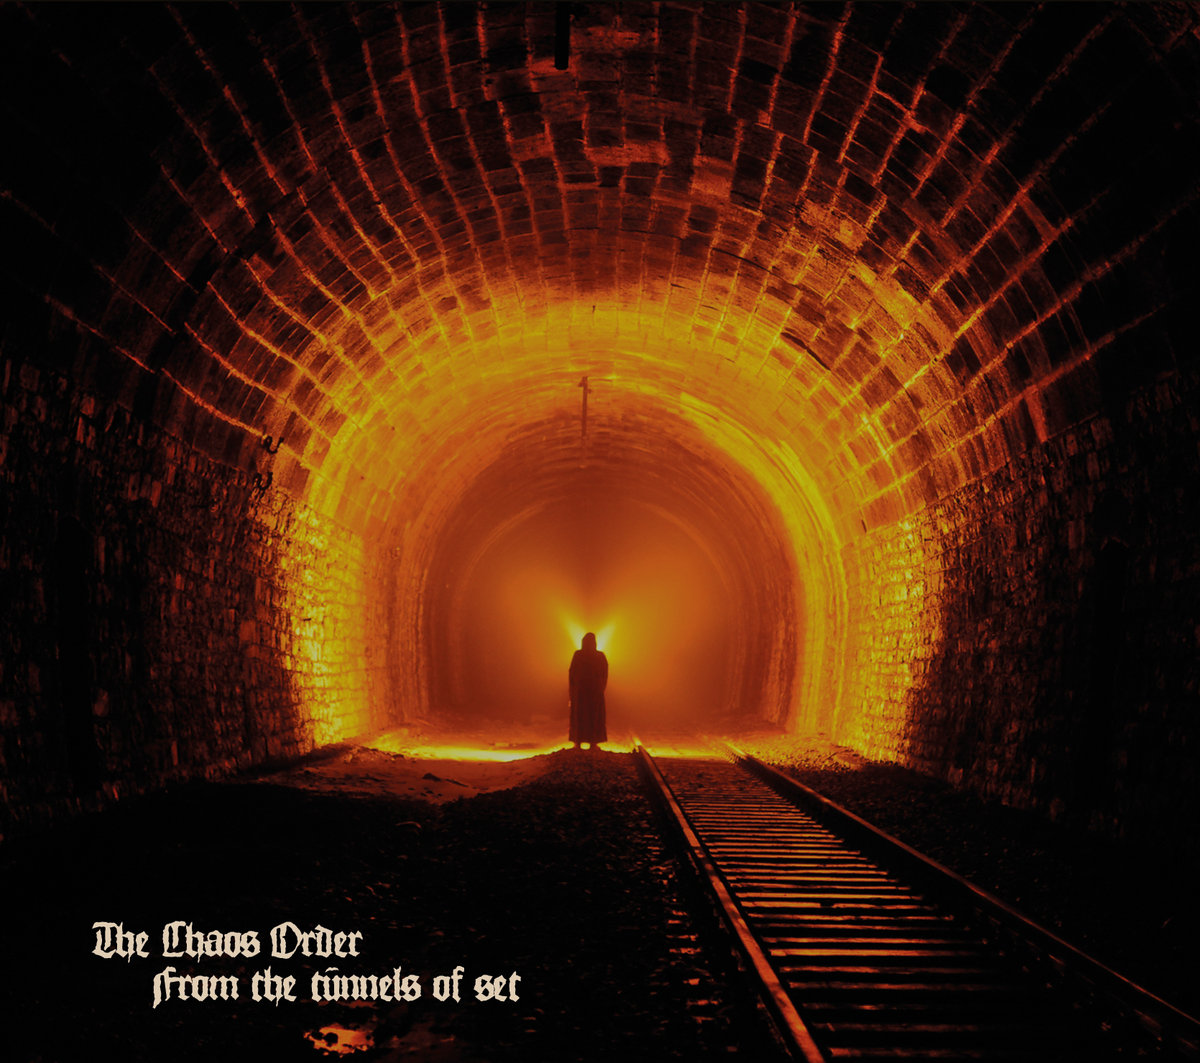 THE CHAOS ORDER - From the Tunnels of Set